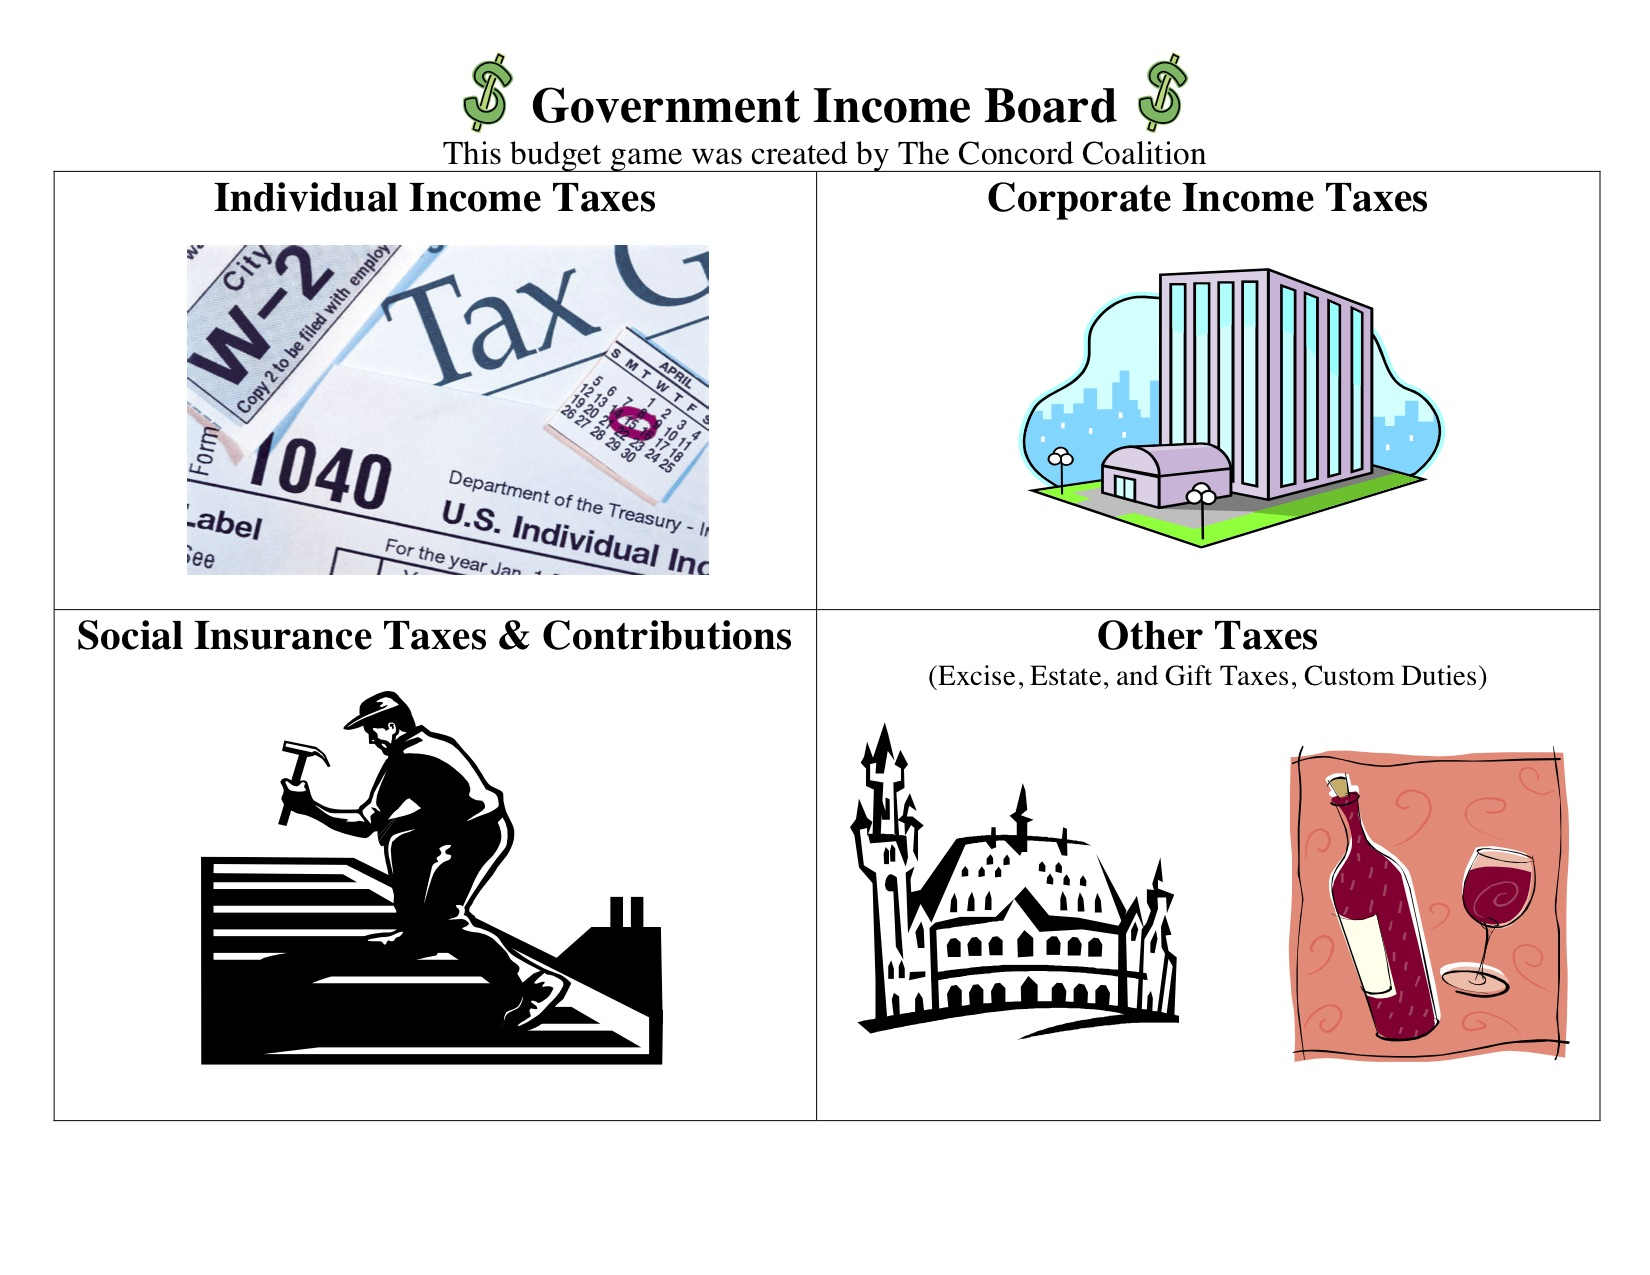 income game board